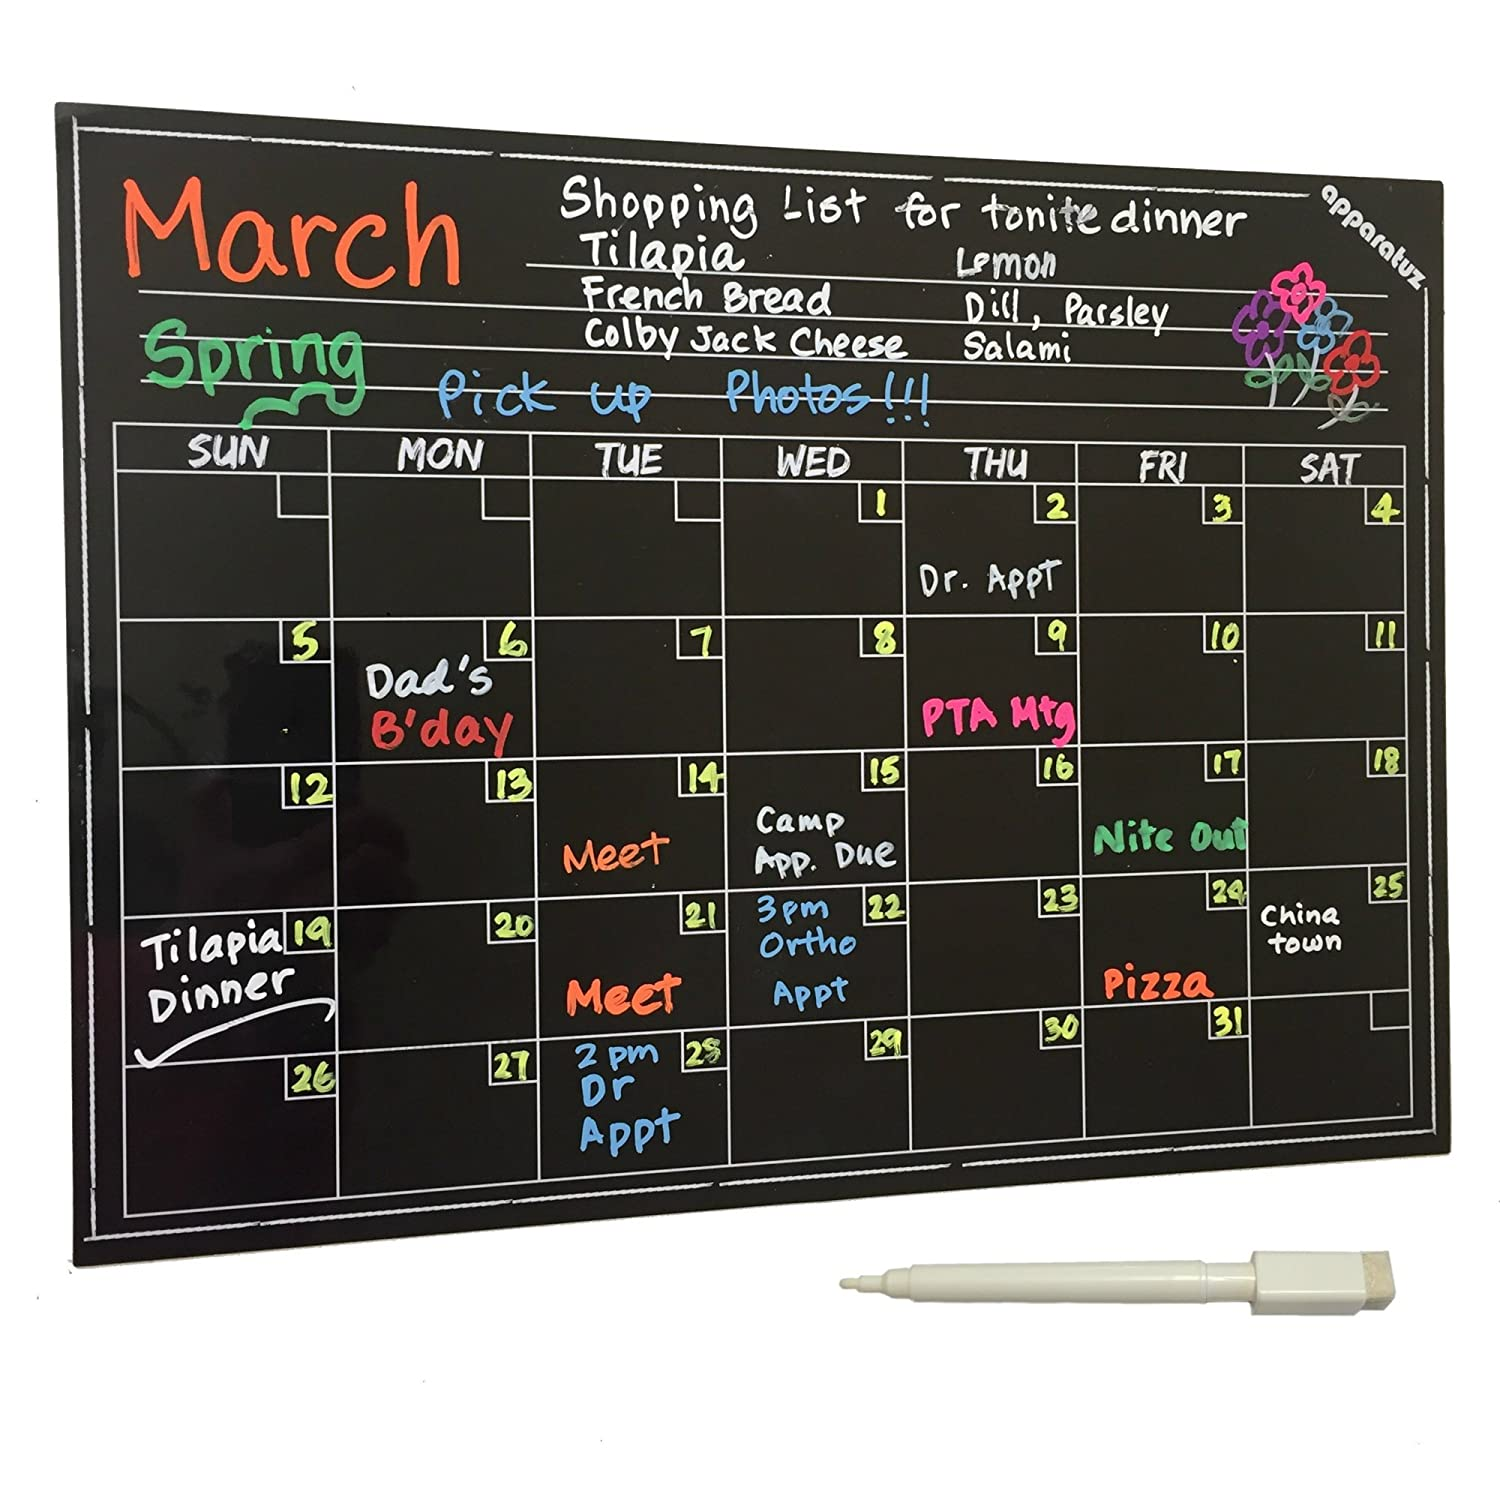 Magnetic Chalkboard Calendar - Smart Dry Erase Board For Your Refrigerator, Kitchen & Office. Stylish Black Monthly Design Planner For All Your Kids Activities + 1 White Liquid Chalk Marker (16x12) apparatuz MC1612